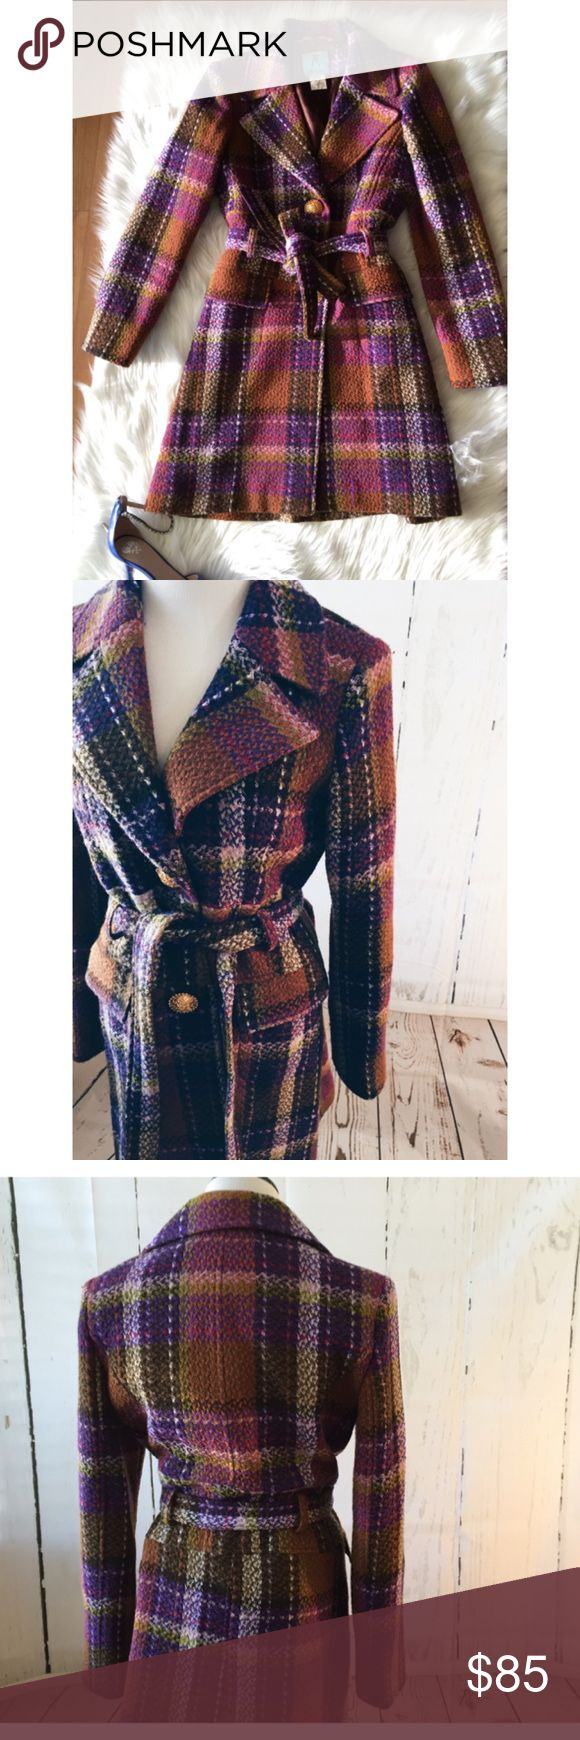 """Guess Marciano Tweed Trench Gold Button Coat Med This is a gorgeous Tweed Trench coat made by Marciano size medium. Lined. 100%wool and 100% poly blend lining. Comes with matching belt. Sleeve length 25""""/ bust up to 36"""" (when button)/ coat length 34."""" Front pockets. Gently used- in great condition and no visible flaws. 4/18/17 Guess by Marciano Jackets & Coats"""